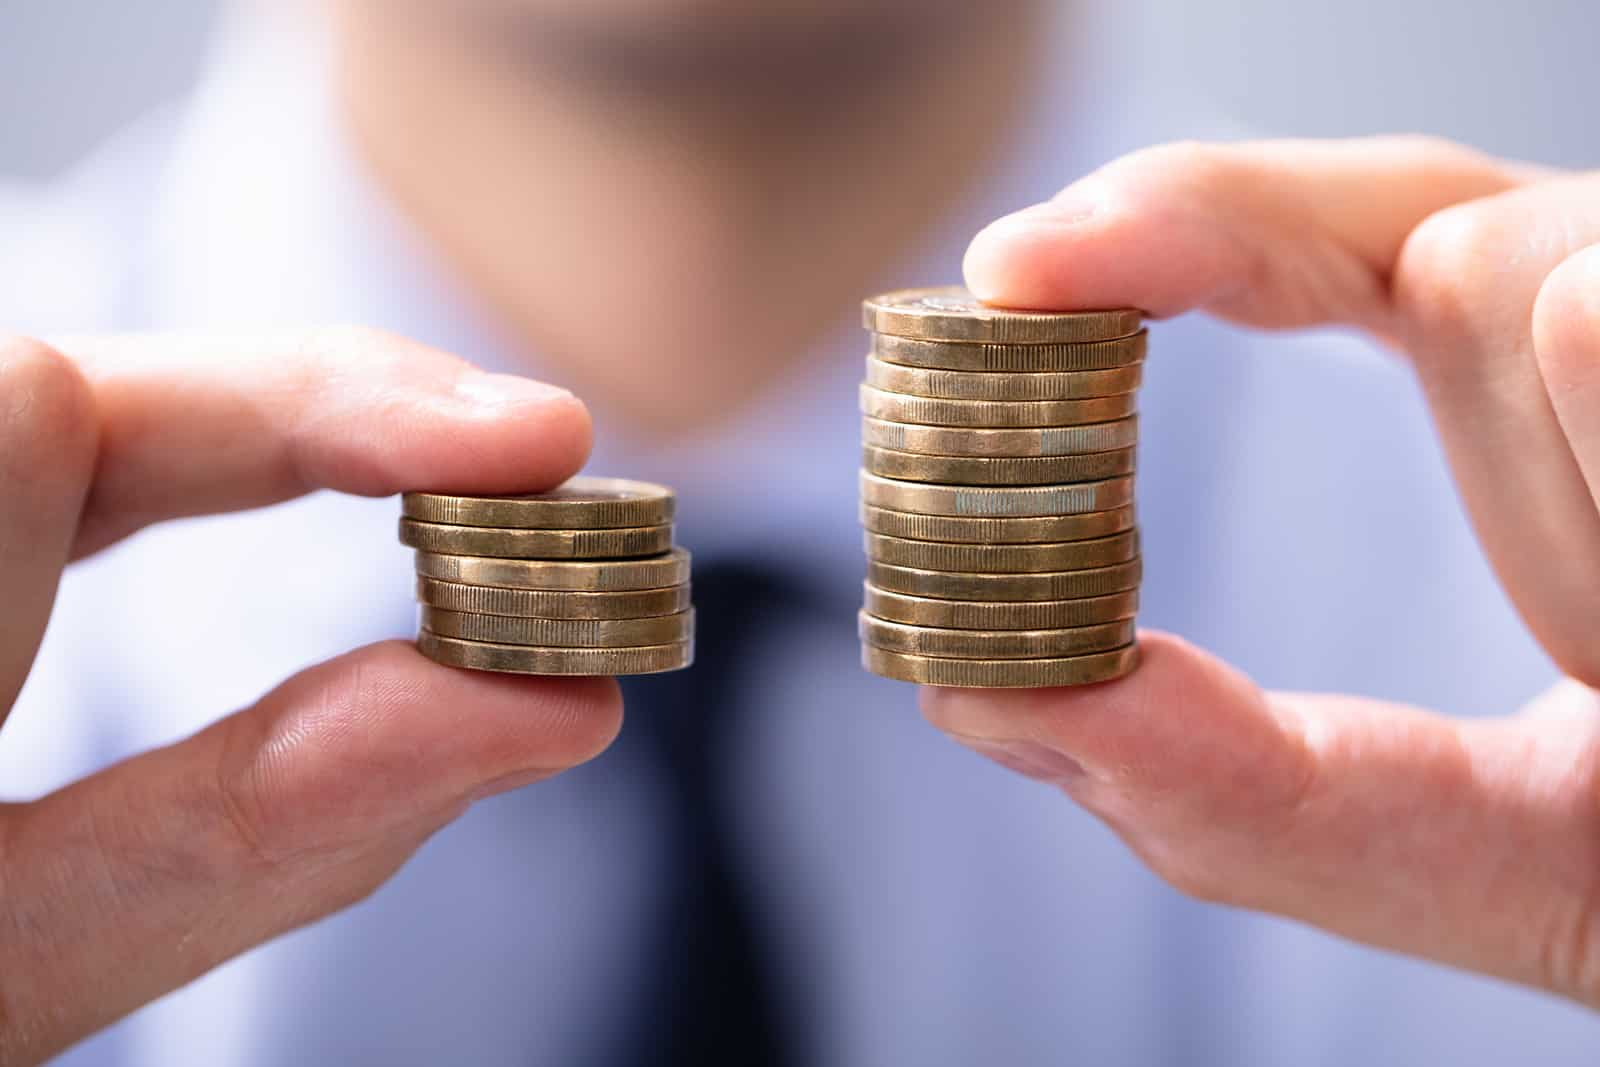 Man Holding Two Coin Stacks To Compare